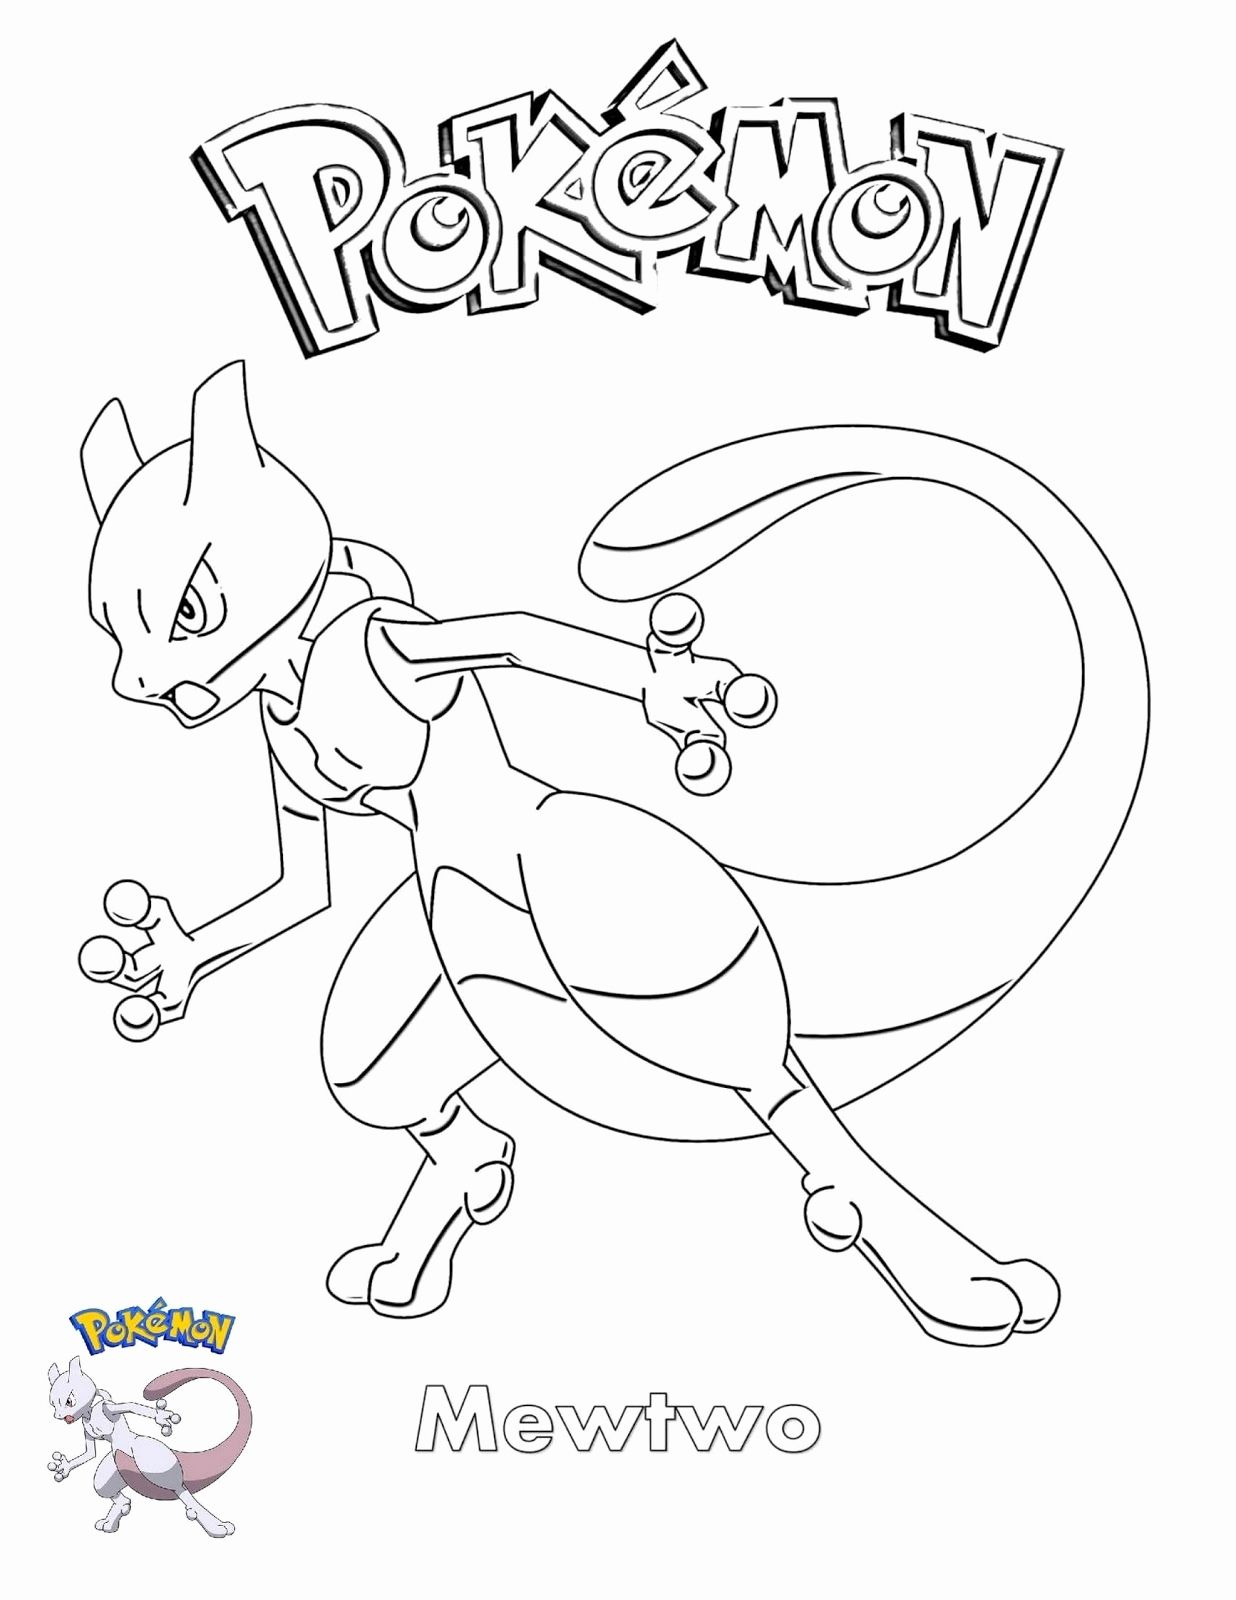 Coloring Pages For Kids Boys Pokemon Cards Pokemon Coloring Pokemon Coloring Pages Puppy Coloring Pages